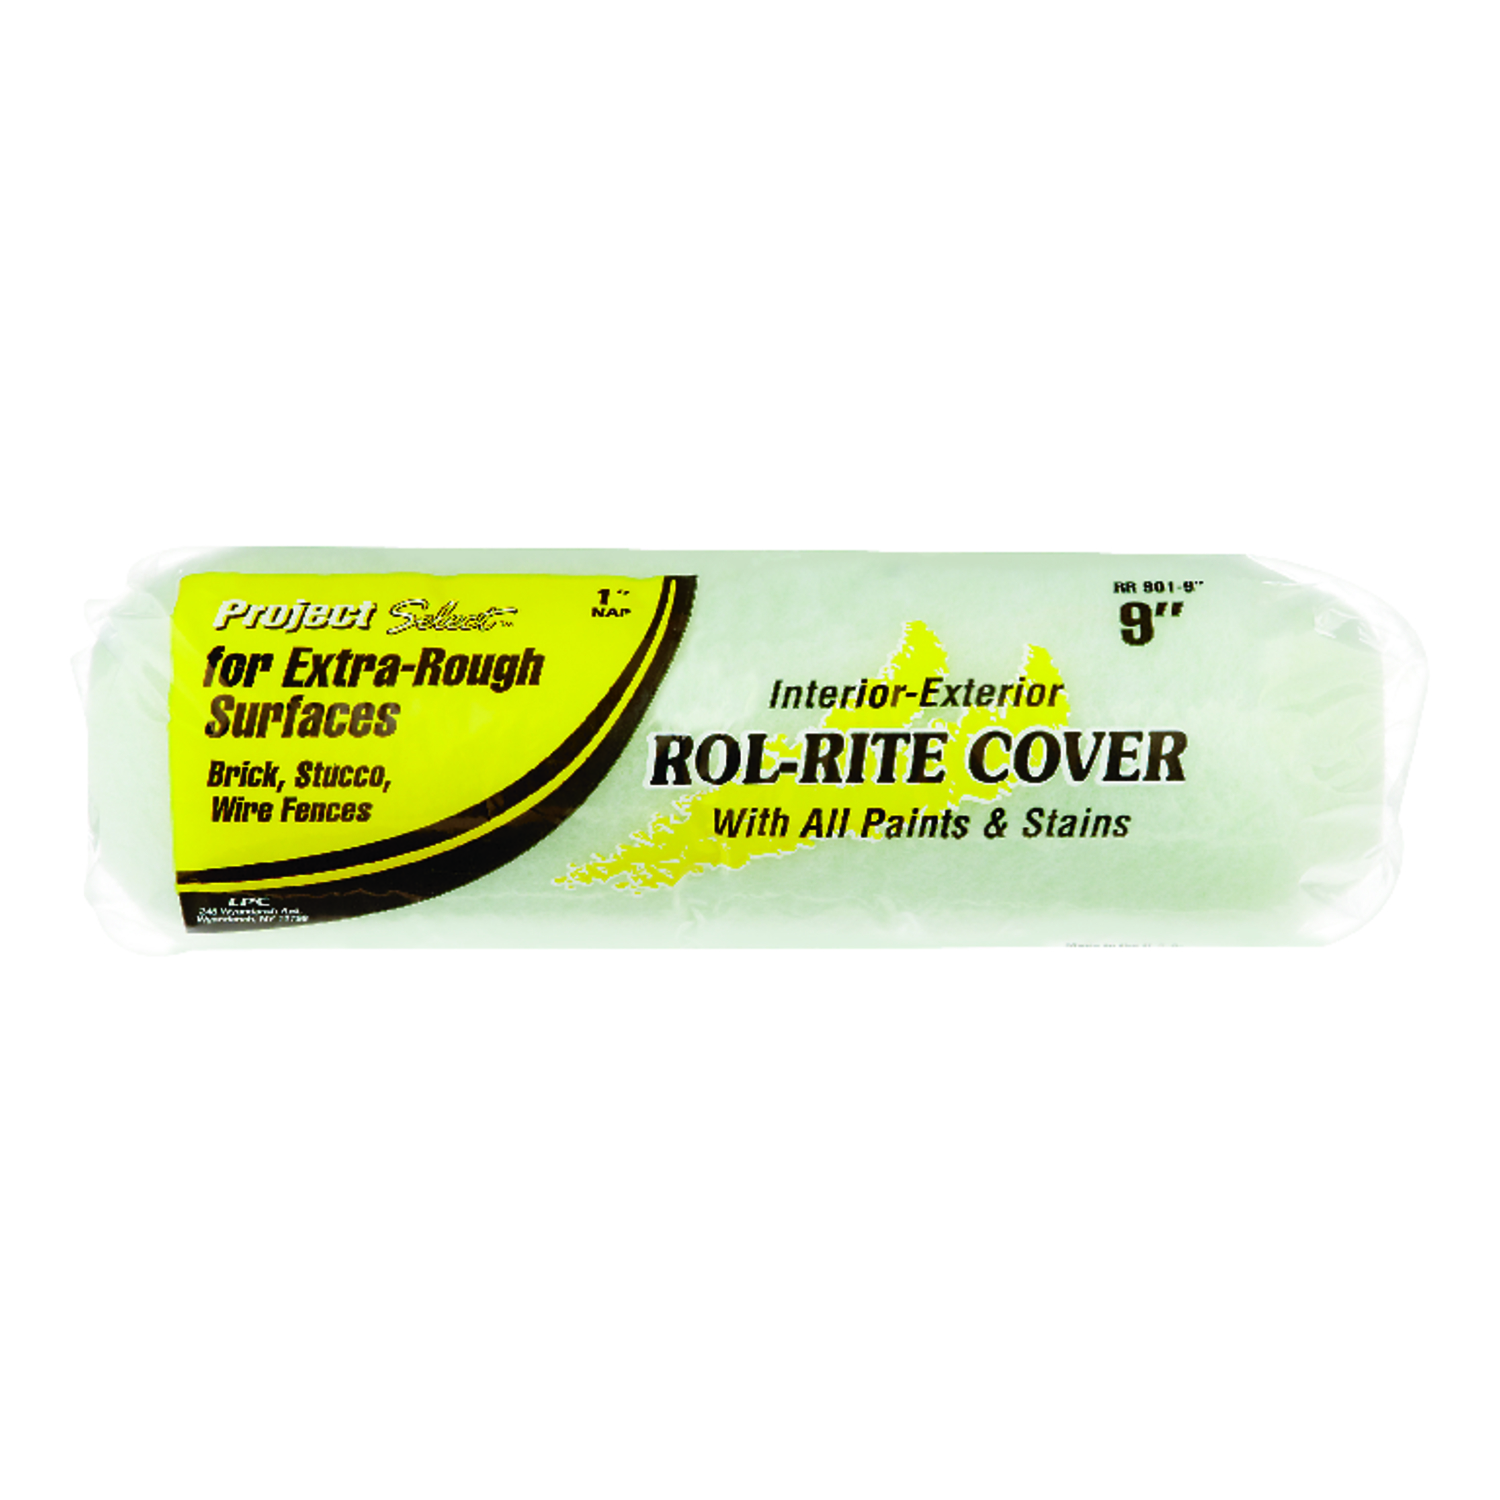 Project Select  Rol-Rite  Polyester  1 in.  x 9 in. W Paint Roller Cover  1 pk For Rough Surfaces Re